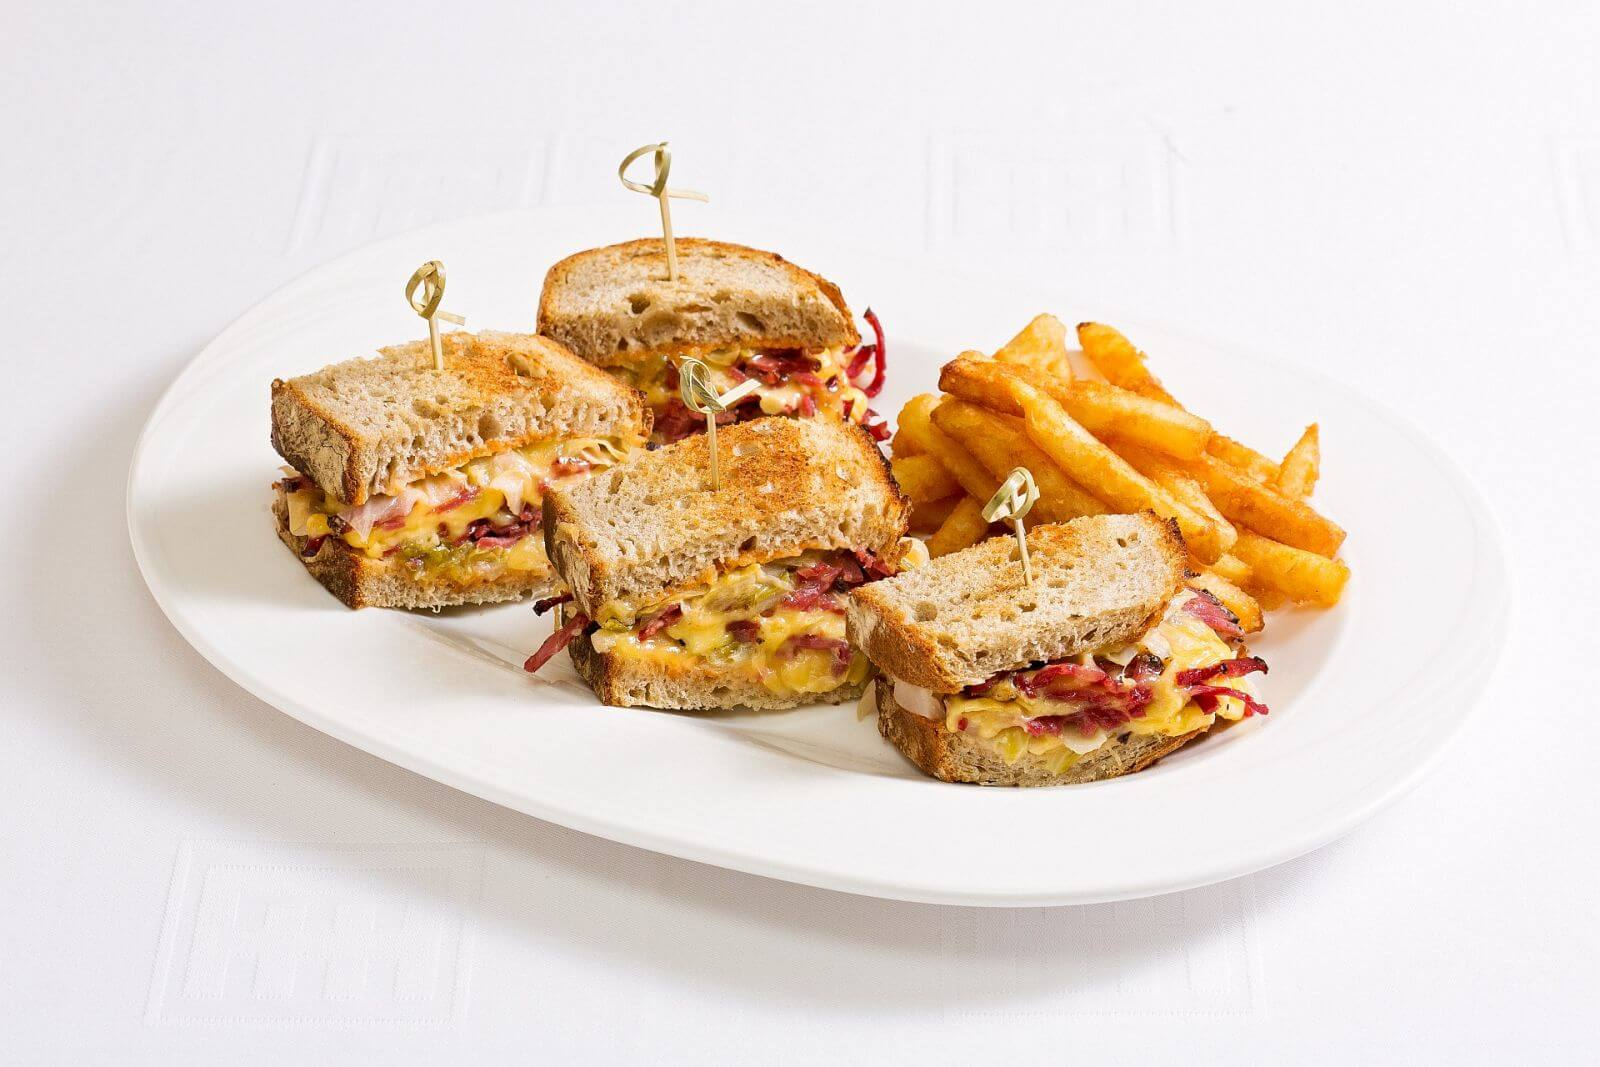 Ambassador Hotel Taipei Room Service Reuben Sandwich with French Fries